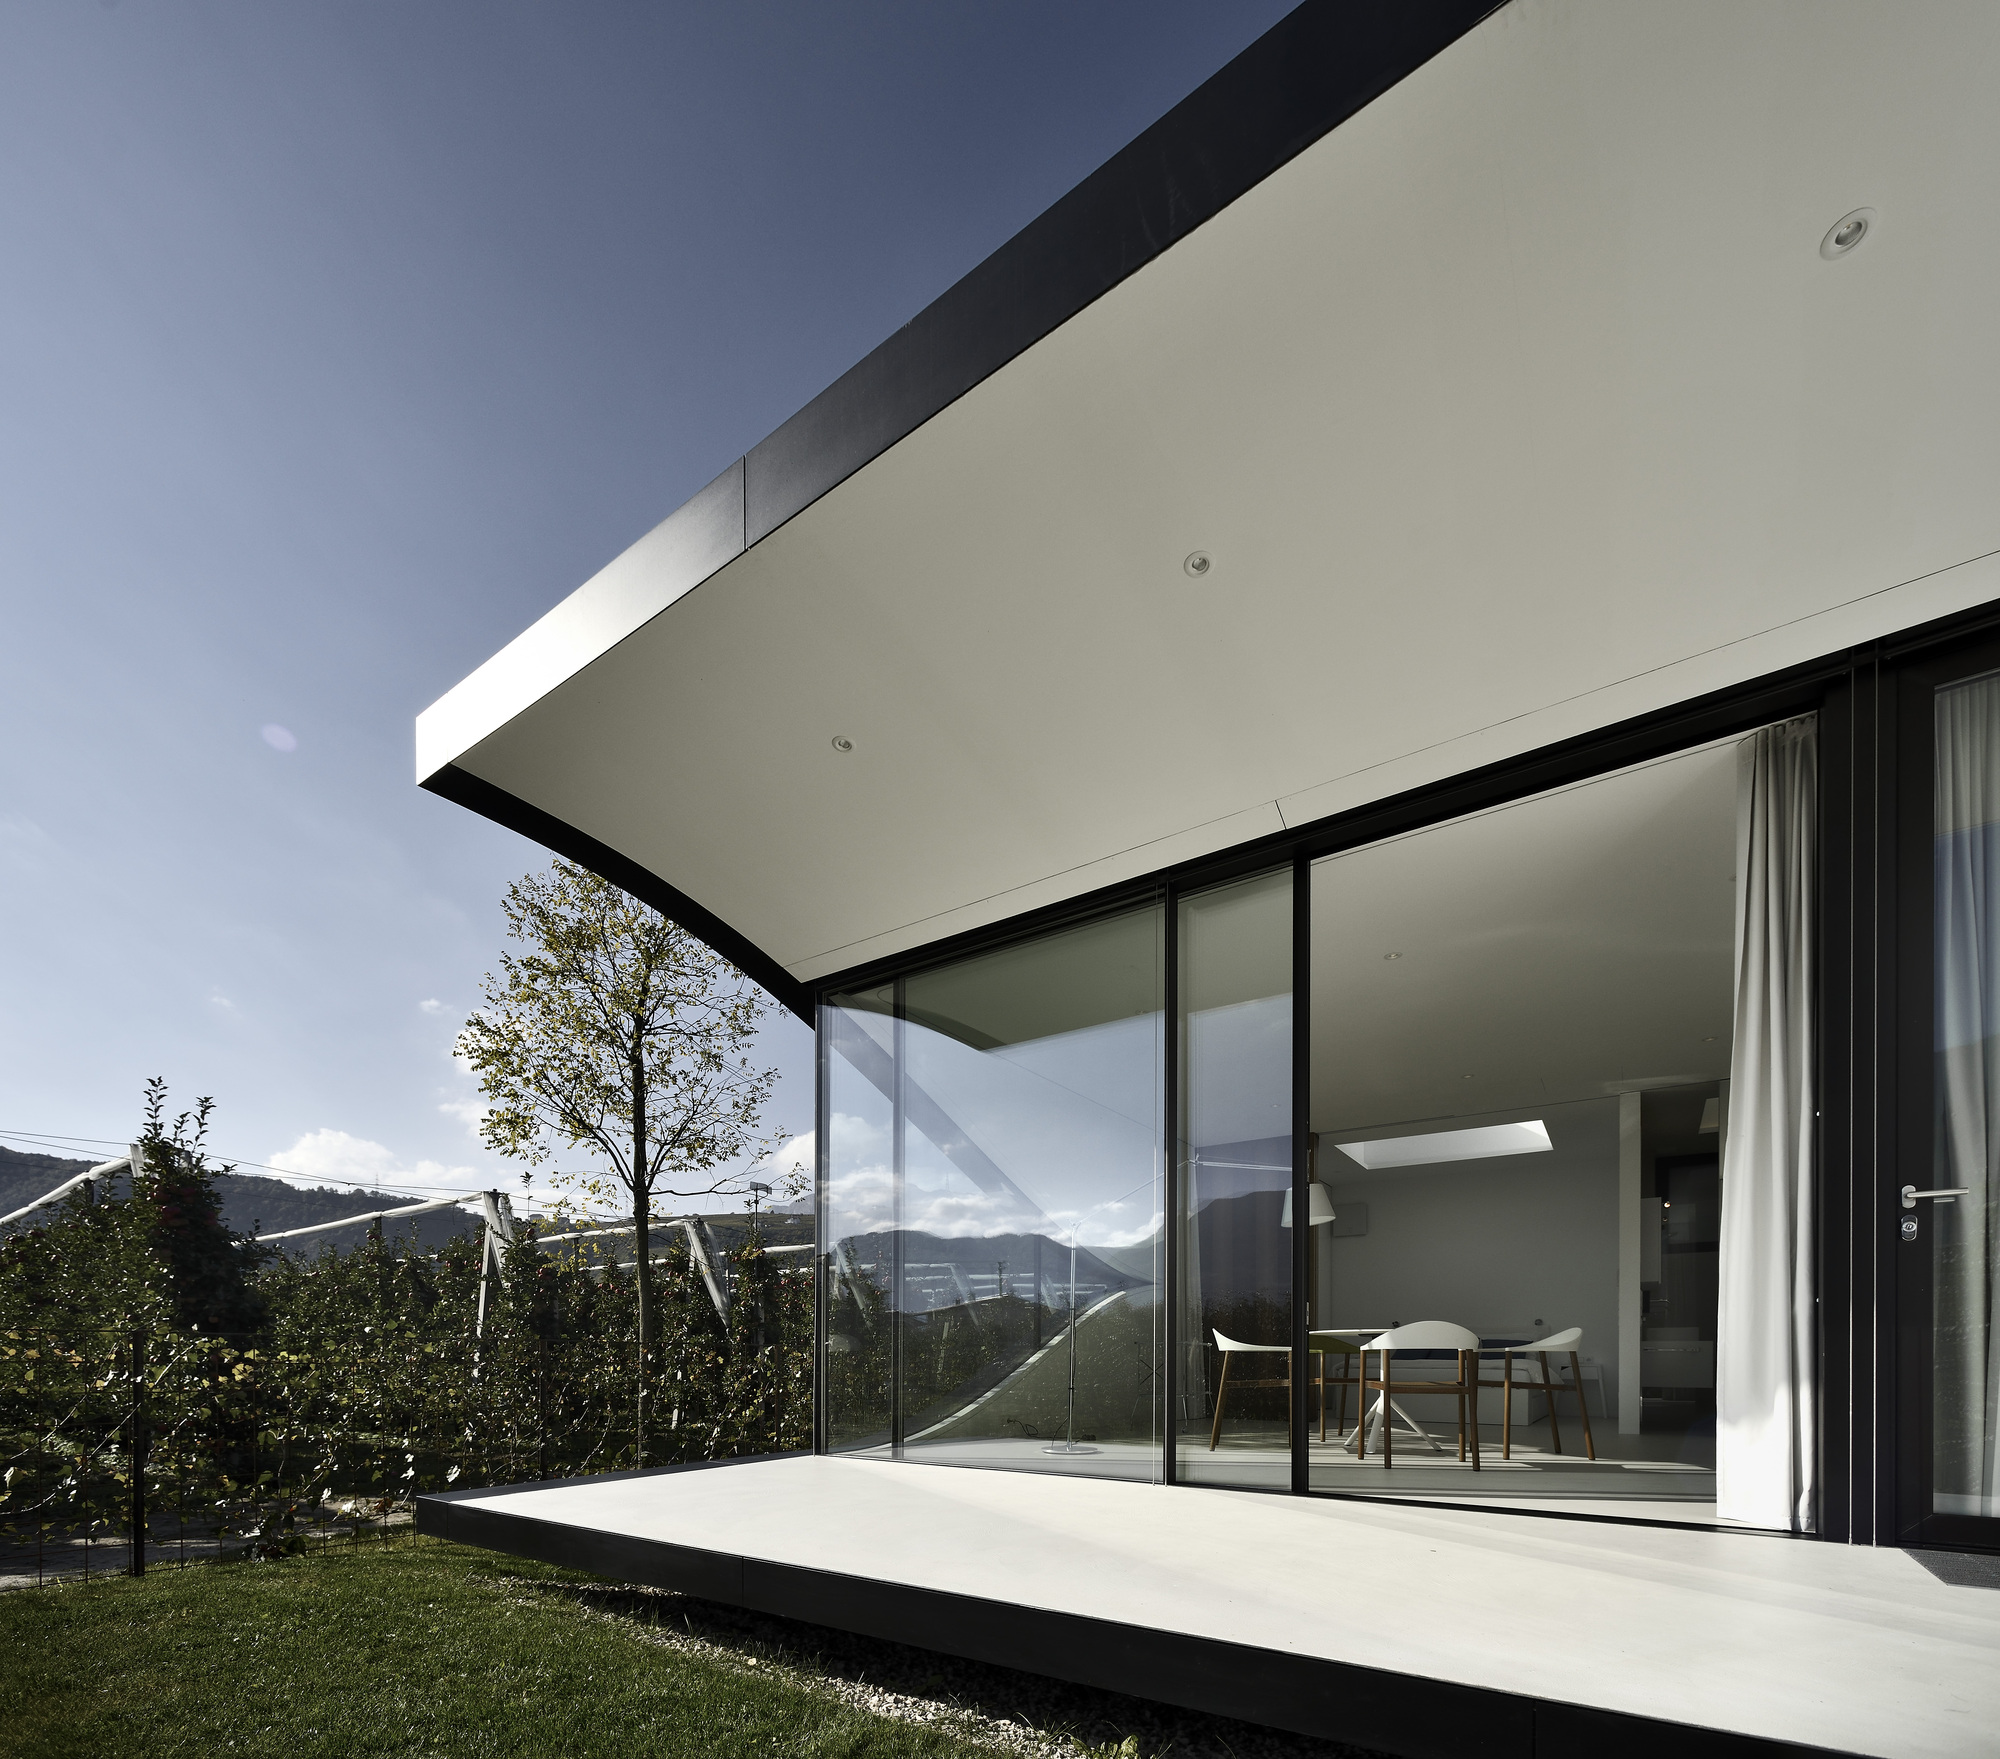 The Mirror Houses / Peter Pichler Architecture (12)